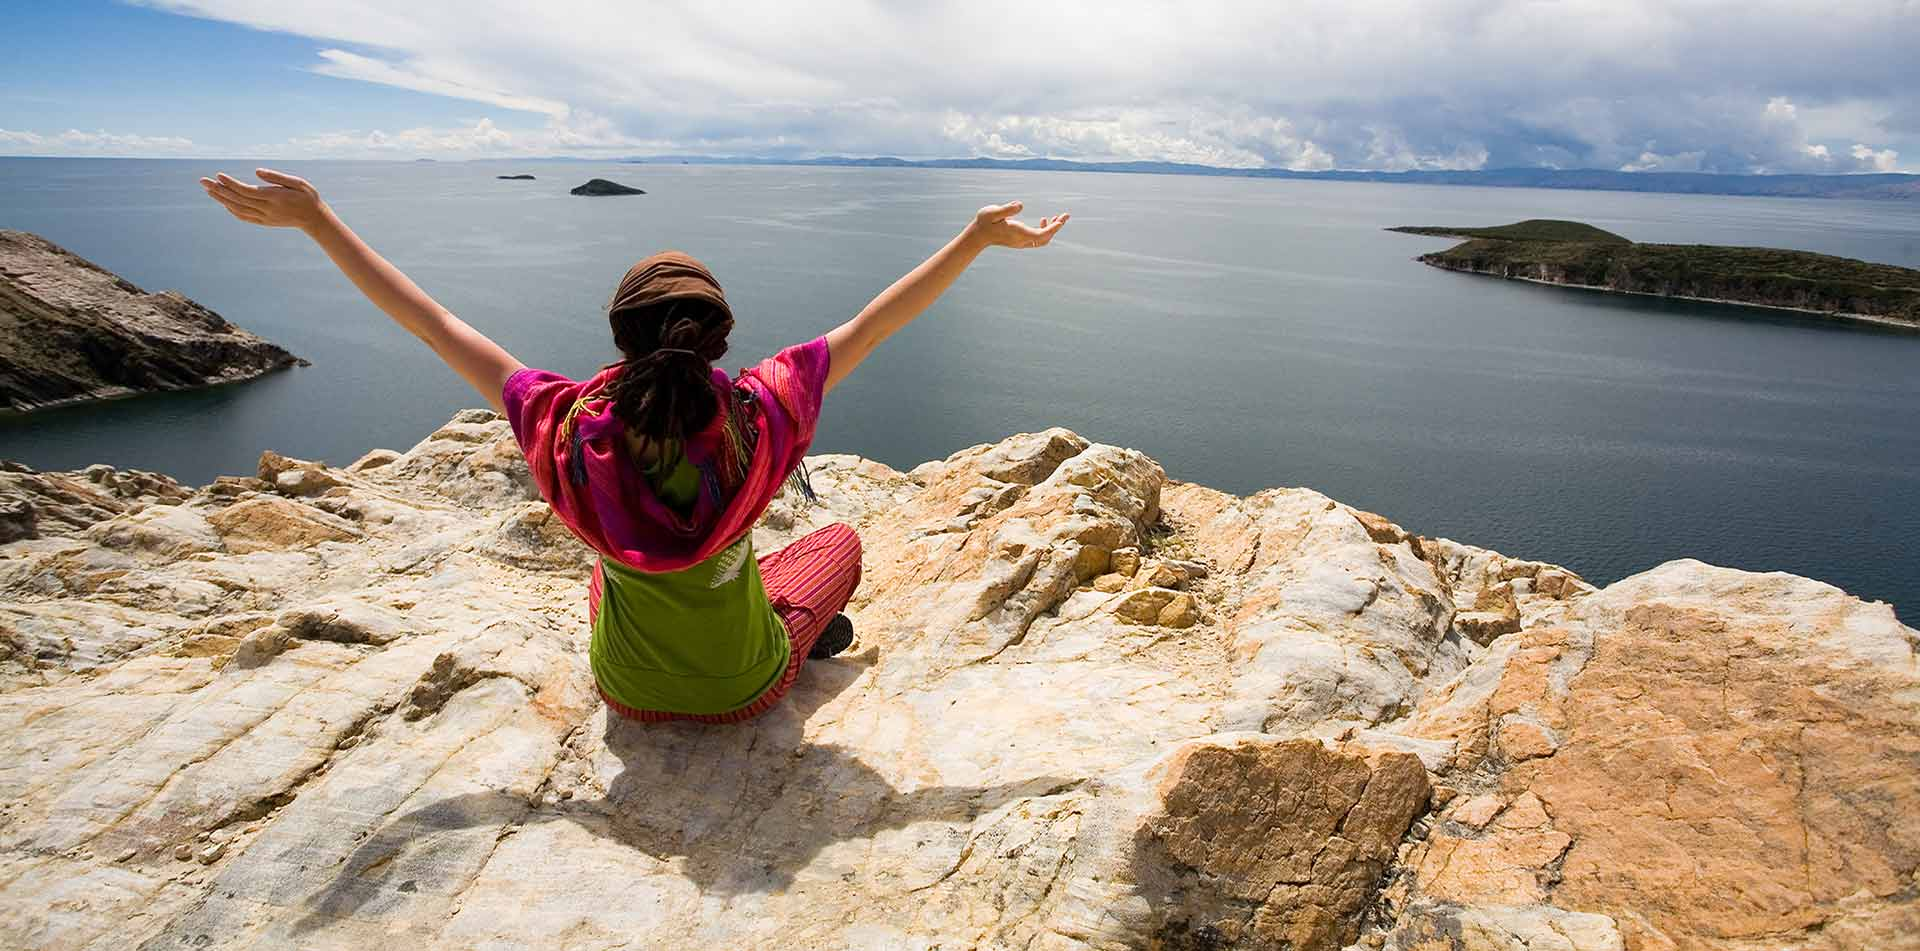 South America Peru Lake Titicaca woman sitting with arms raised looking at scenic view - luxury vacation destinations